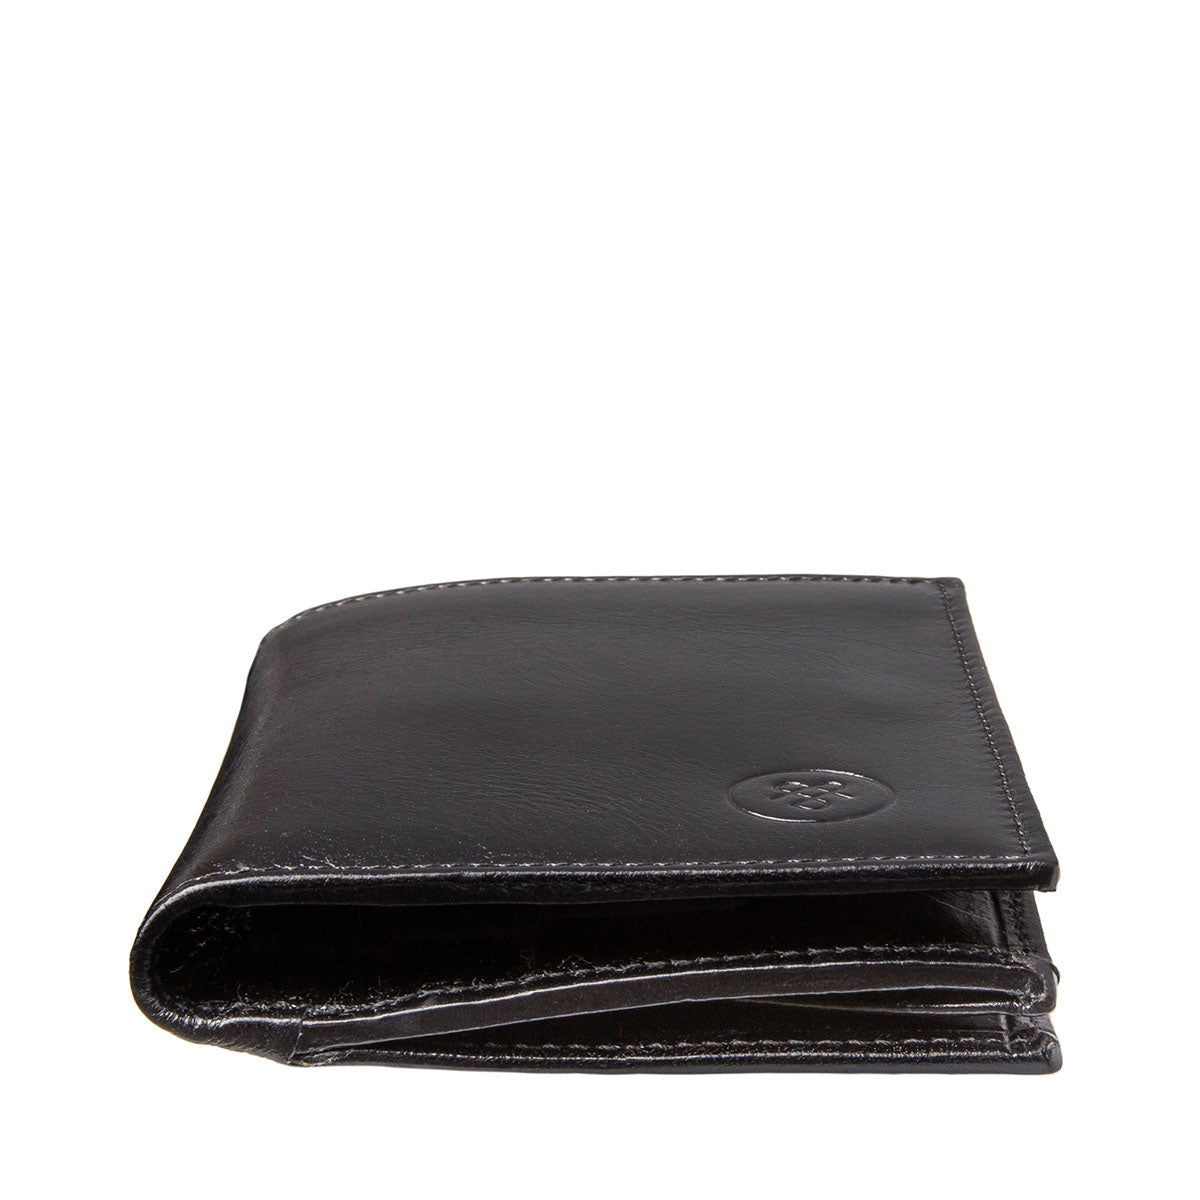 Image 6 of the 'Rocca' Black Veg-Tanned Leather Wallet